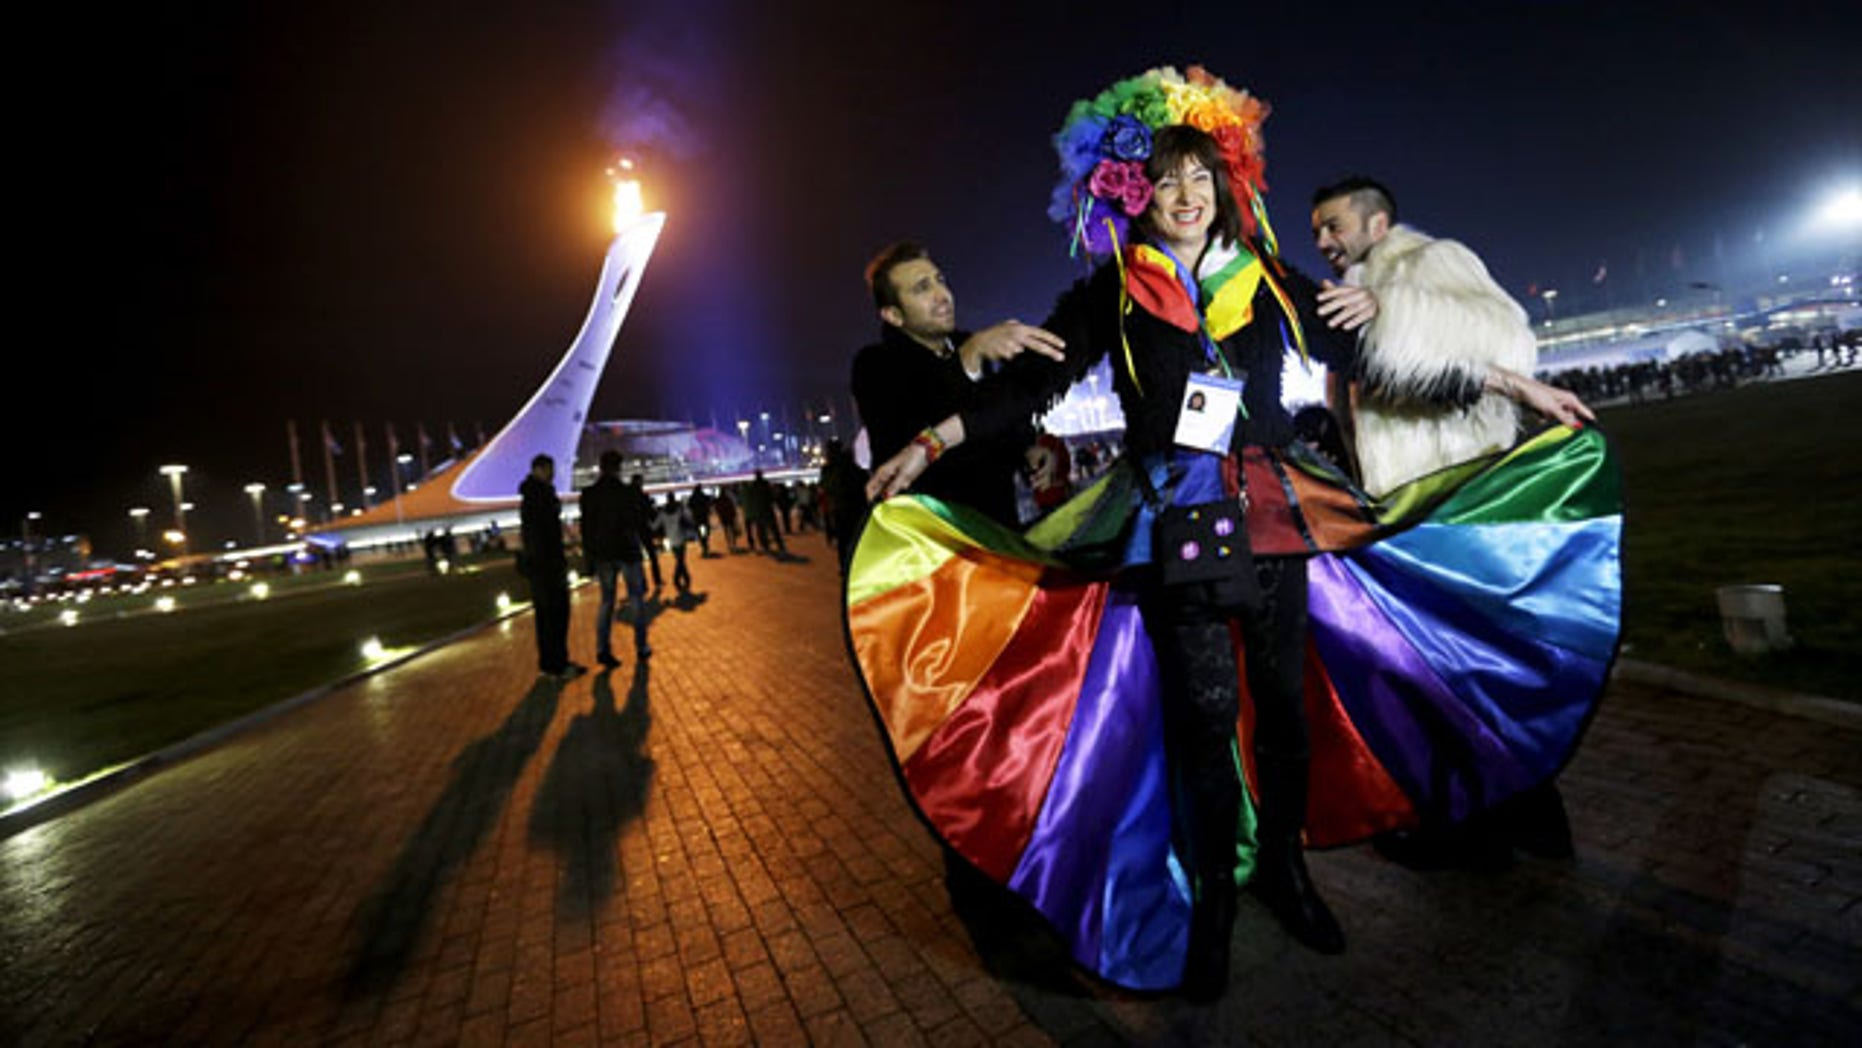 February 17, 2014: Vladimir Luxuria, center, a former Communist lawmaker in the Italian parliament and prominent crusader for transgender rights, is led away by friends to attend a women's ice hockey match after posing for photos on the Olympic Plaza at the 2014 Winter Olympics in Sochi, Russia. Luxuria was soon after detained by police upon entering the Shayba Arena. (AP Photo/David Goldman)